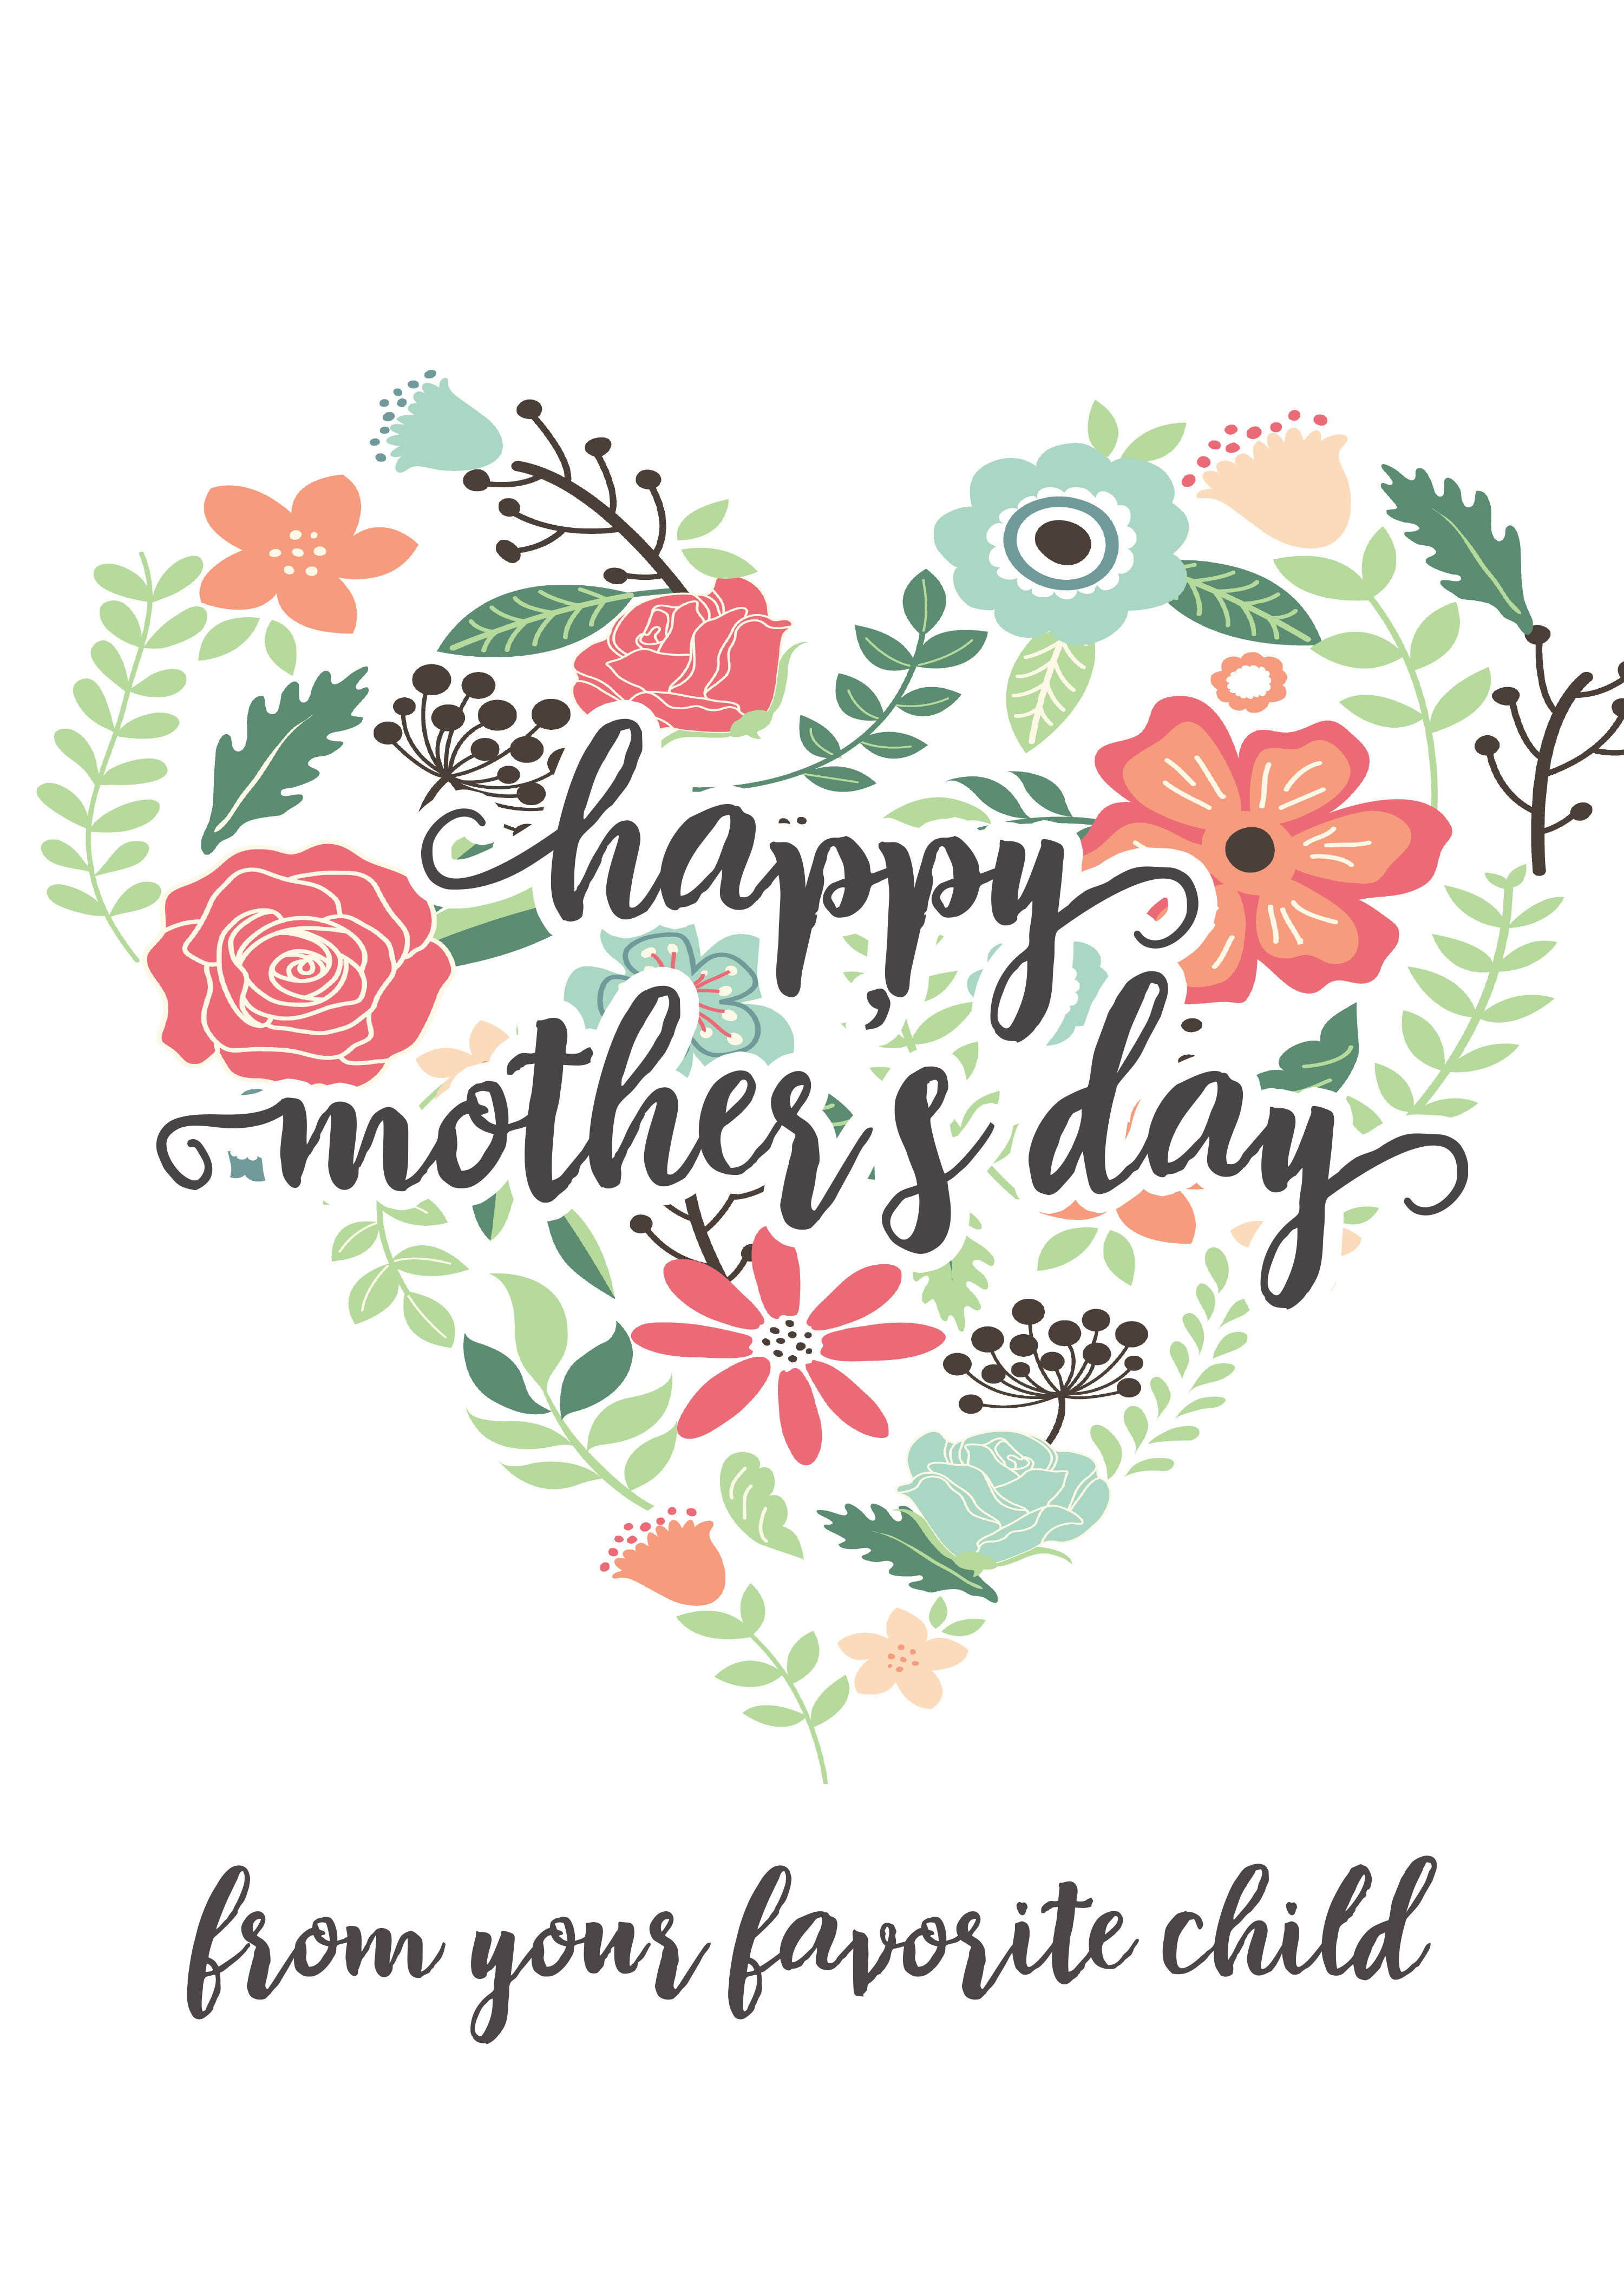 Happy Mothers Day Messages - Free Printable Mothers Day Cards